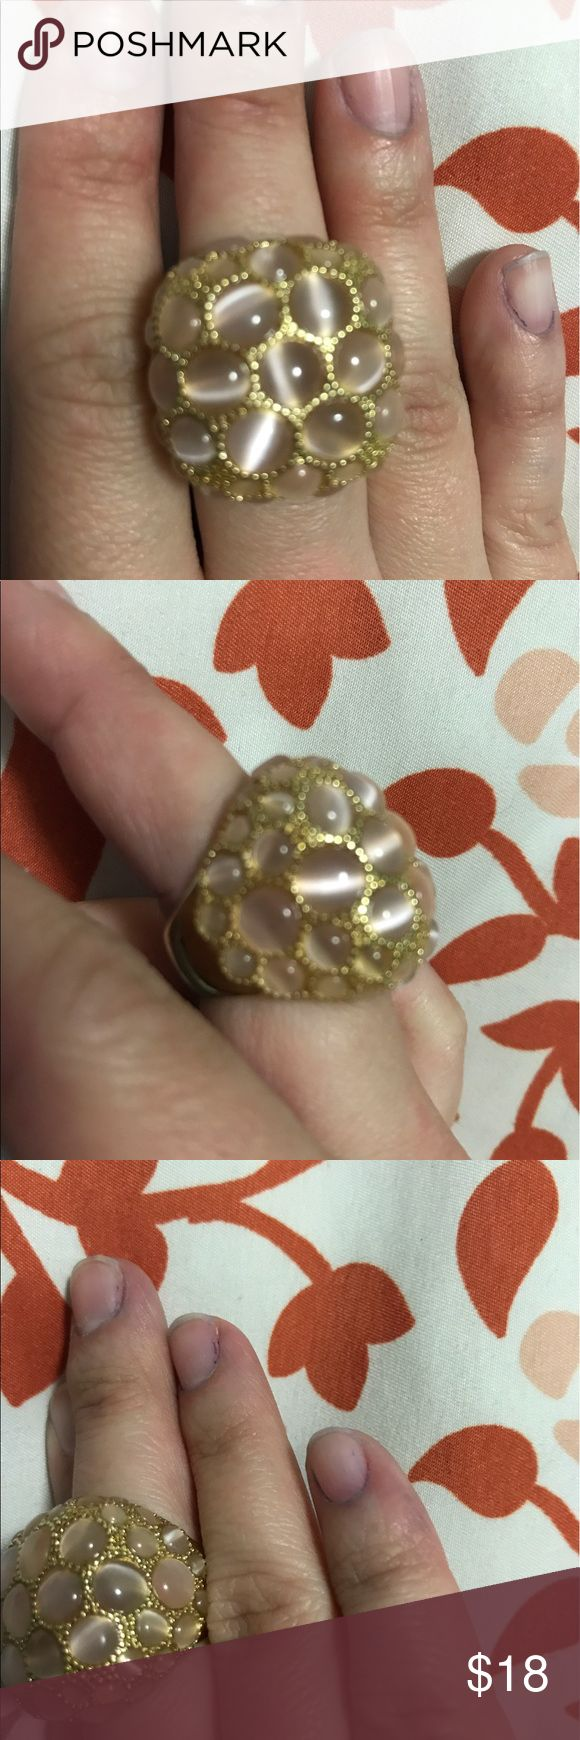 Tan cat eye ring with gold accents Love costume rings that grab attention?  This one is perfect!!!! Several tan cat eye stone surrounded by gold with gold band....EUC.....size 4-5 Jewelry Rings